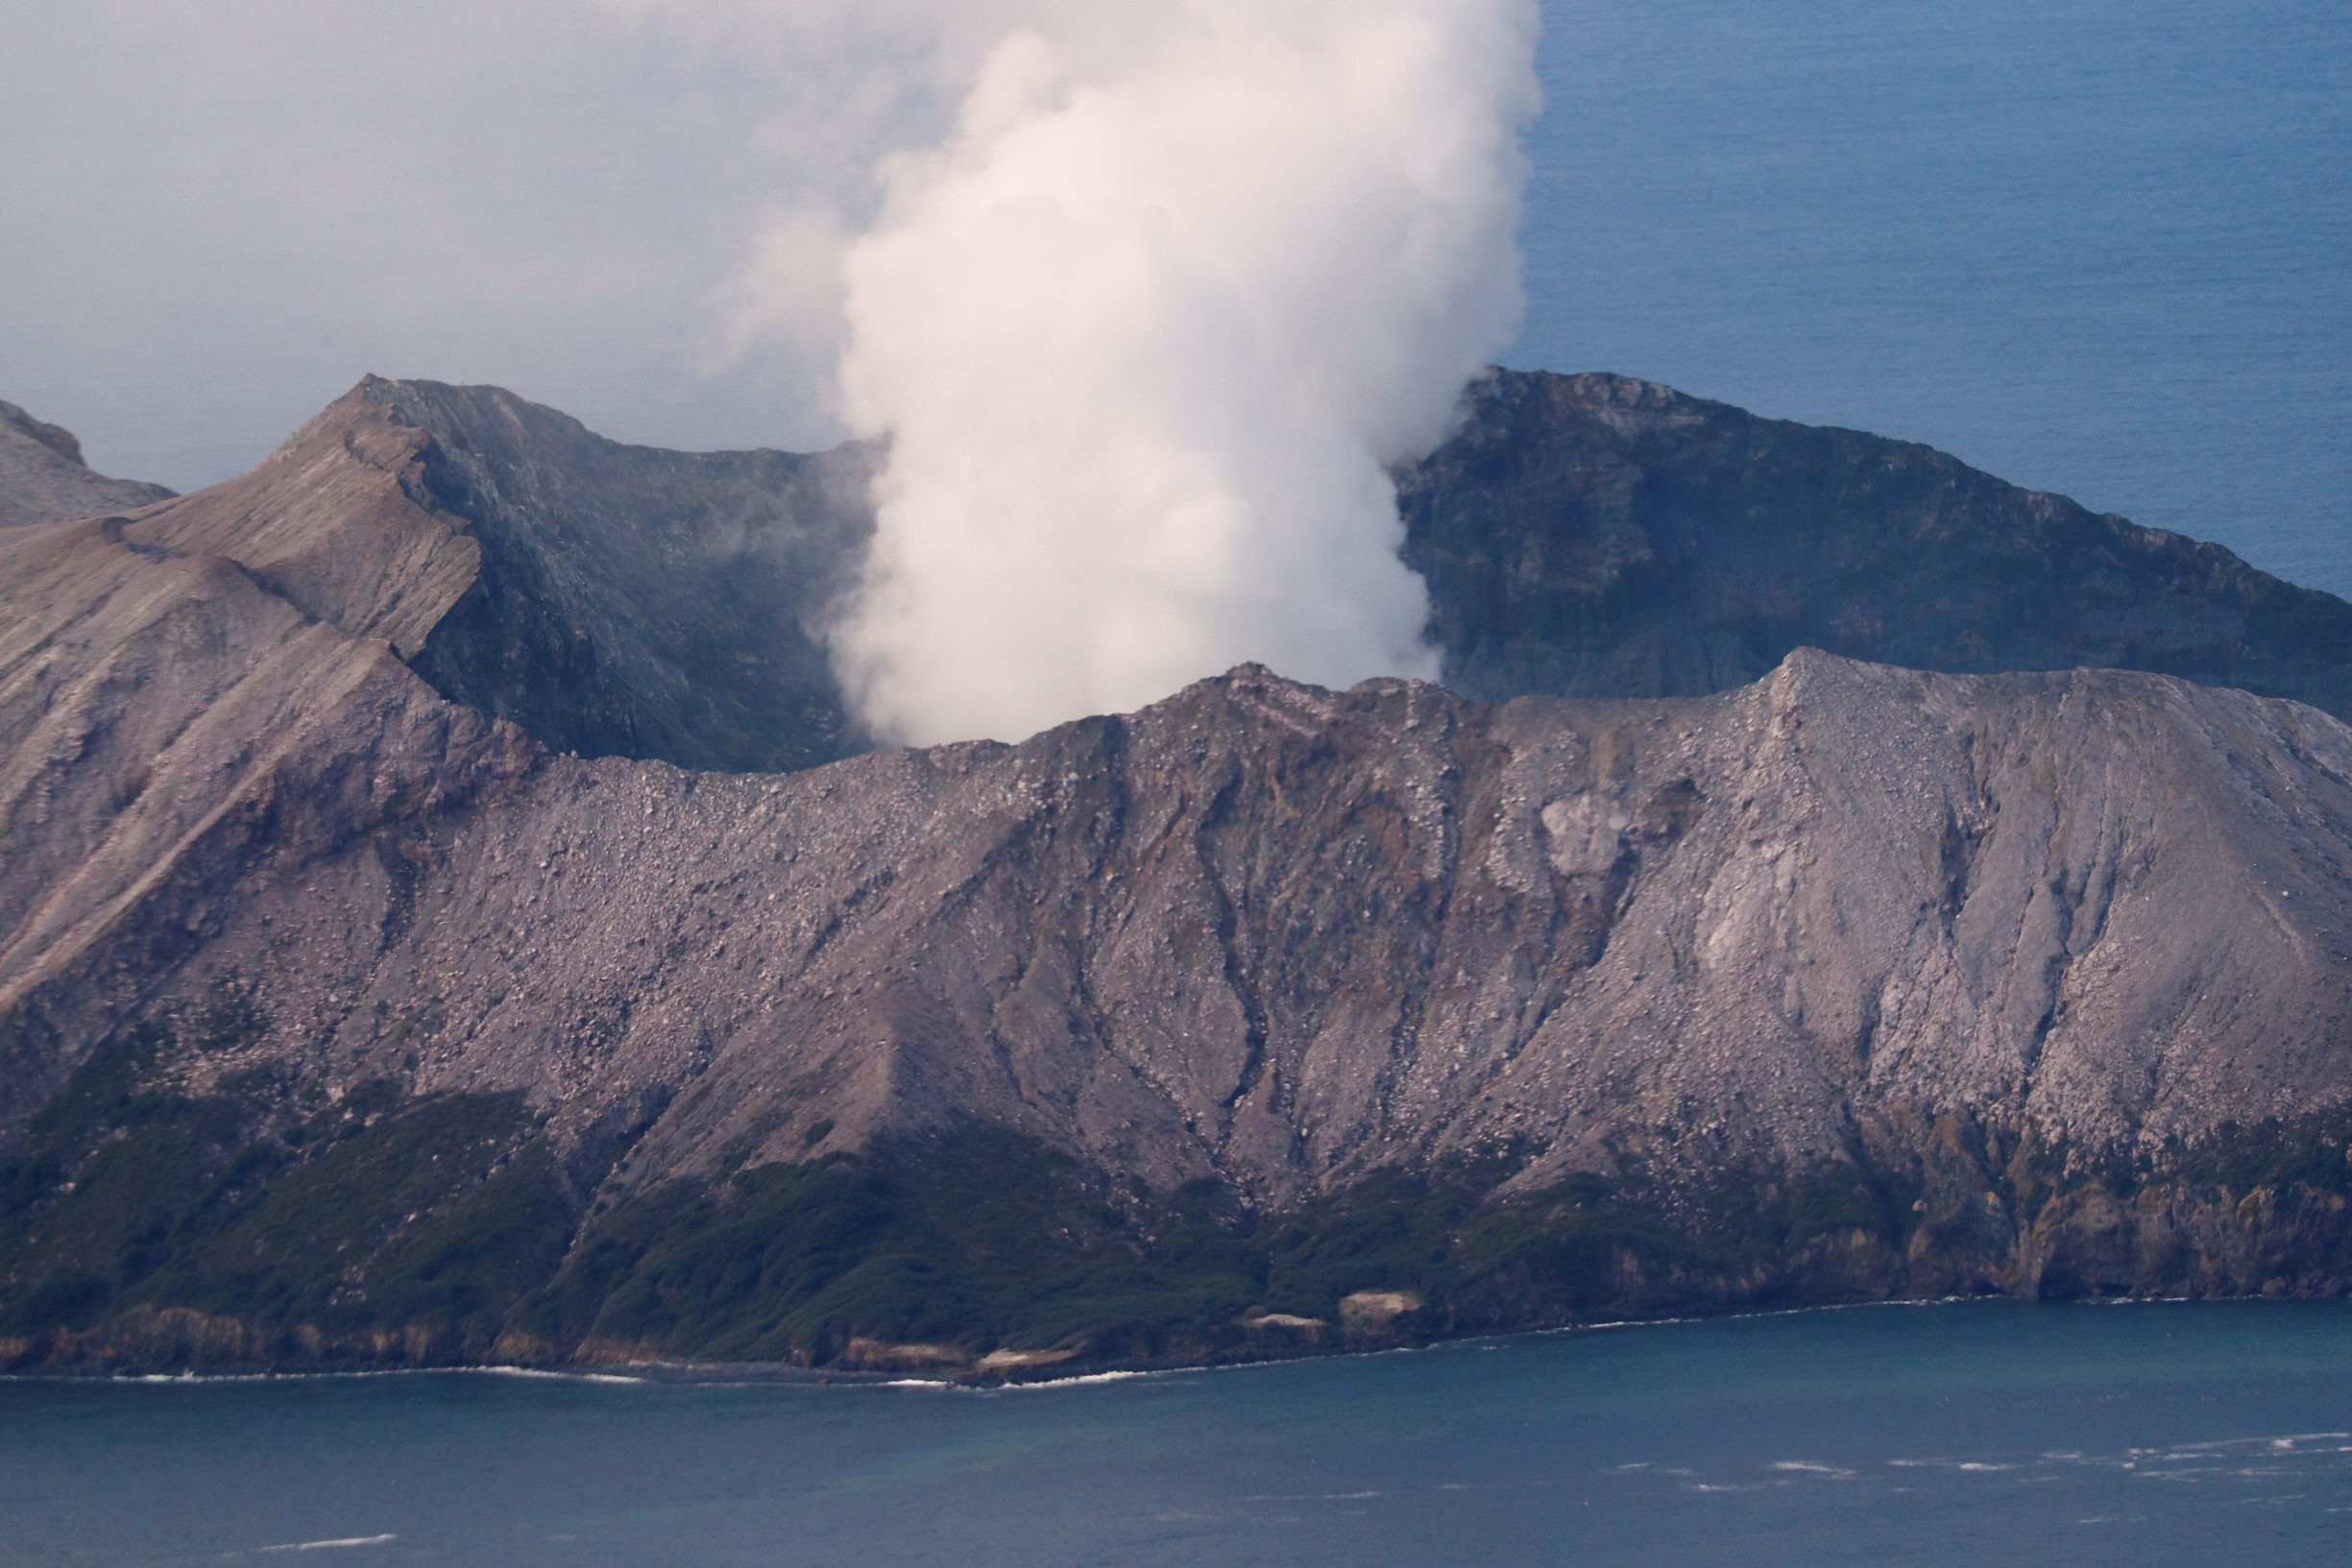 An aerial view of the Whakaari, also known as White Island volcano, as seen from Ohope beach in Whakatane, New Zealand, December 12, 2019. REUTERS/Jorge Silva